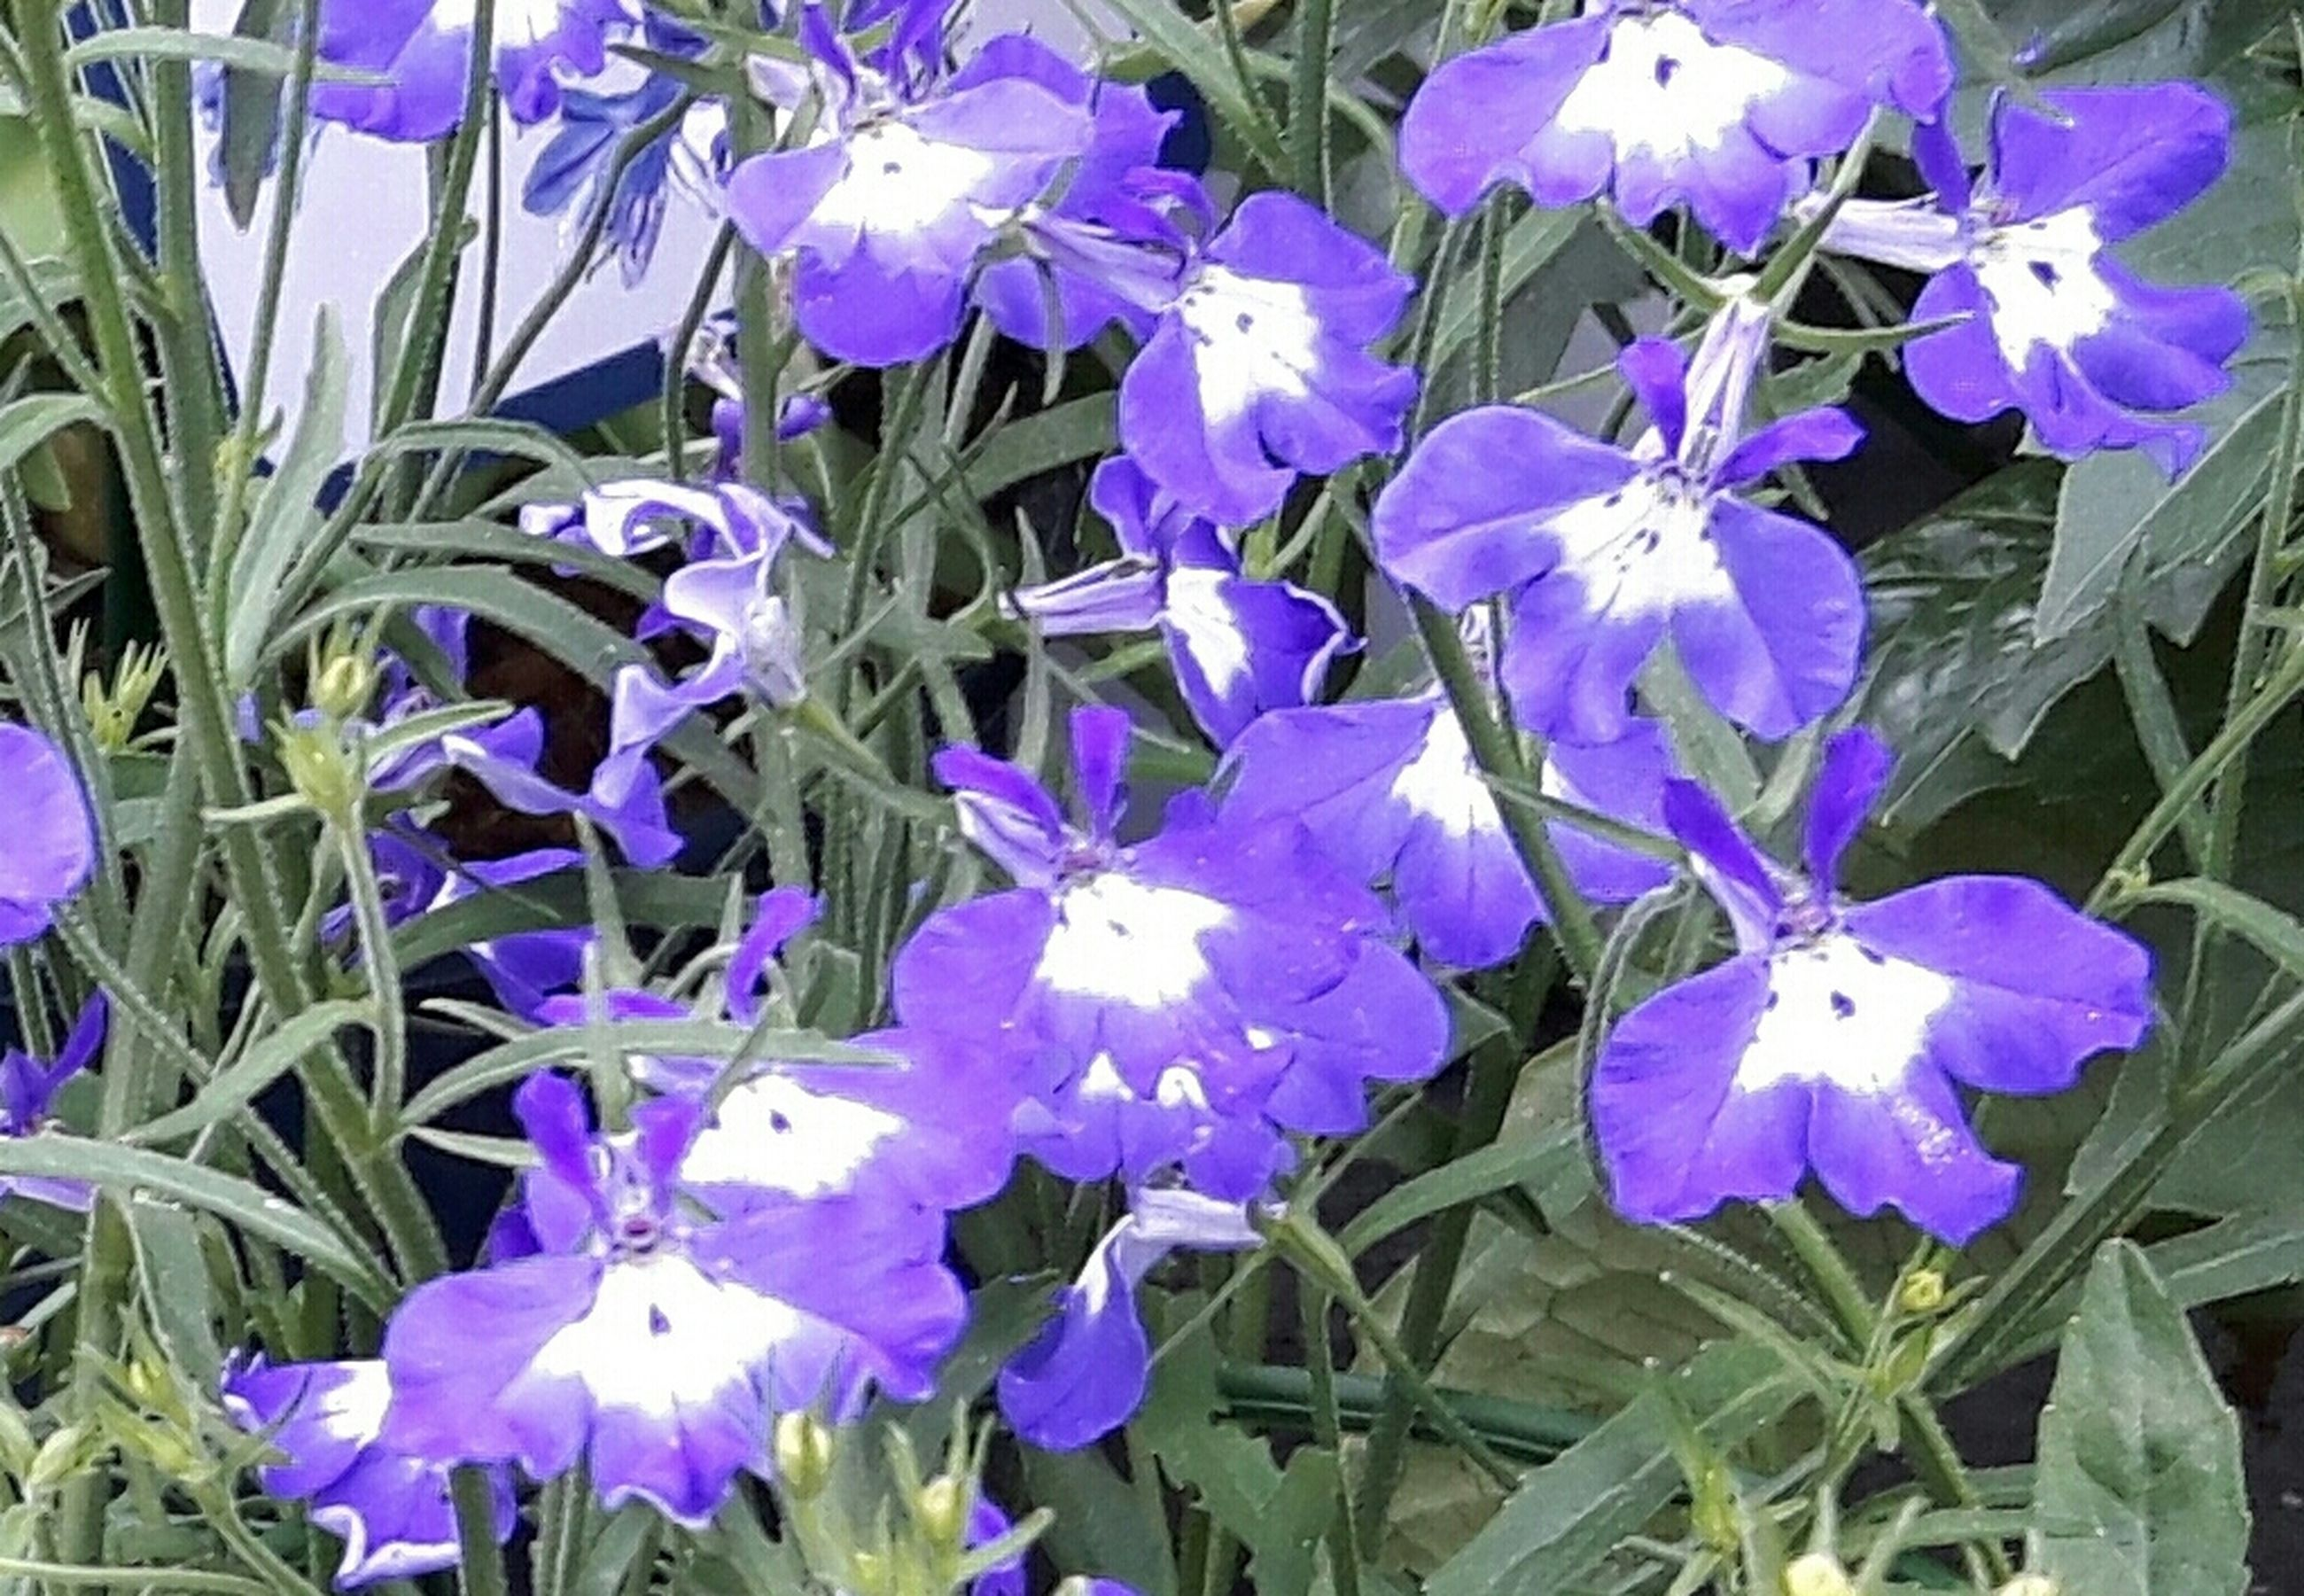 flower, purple, freshness, petal, fragility, growth, flower head, beauty in nature, plant, blooming, nature, leaf, in bloom, high angle view, close-up, blue, stem, park - man made space, outdoors, no people